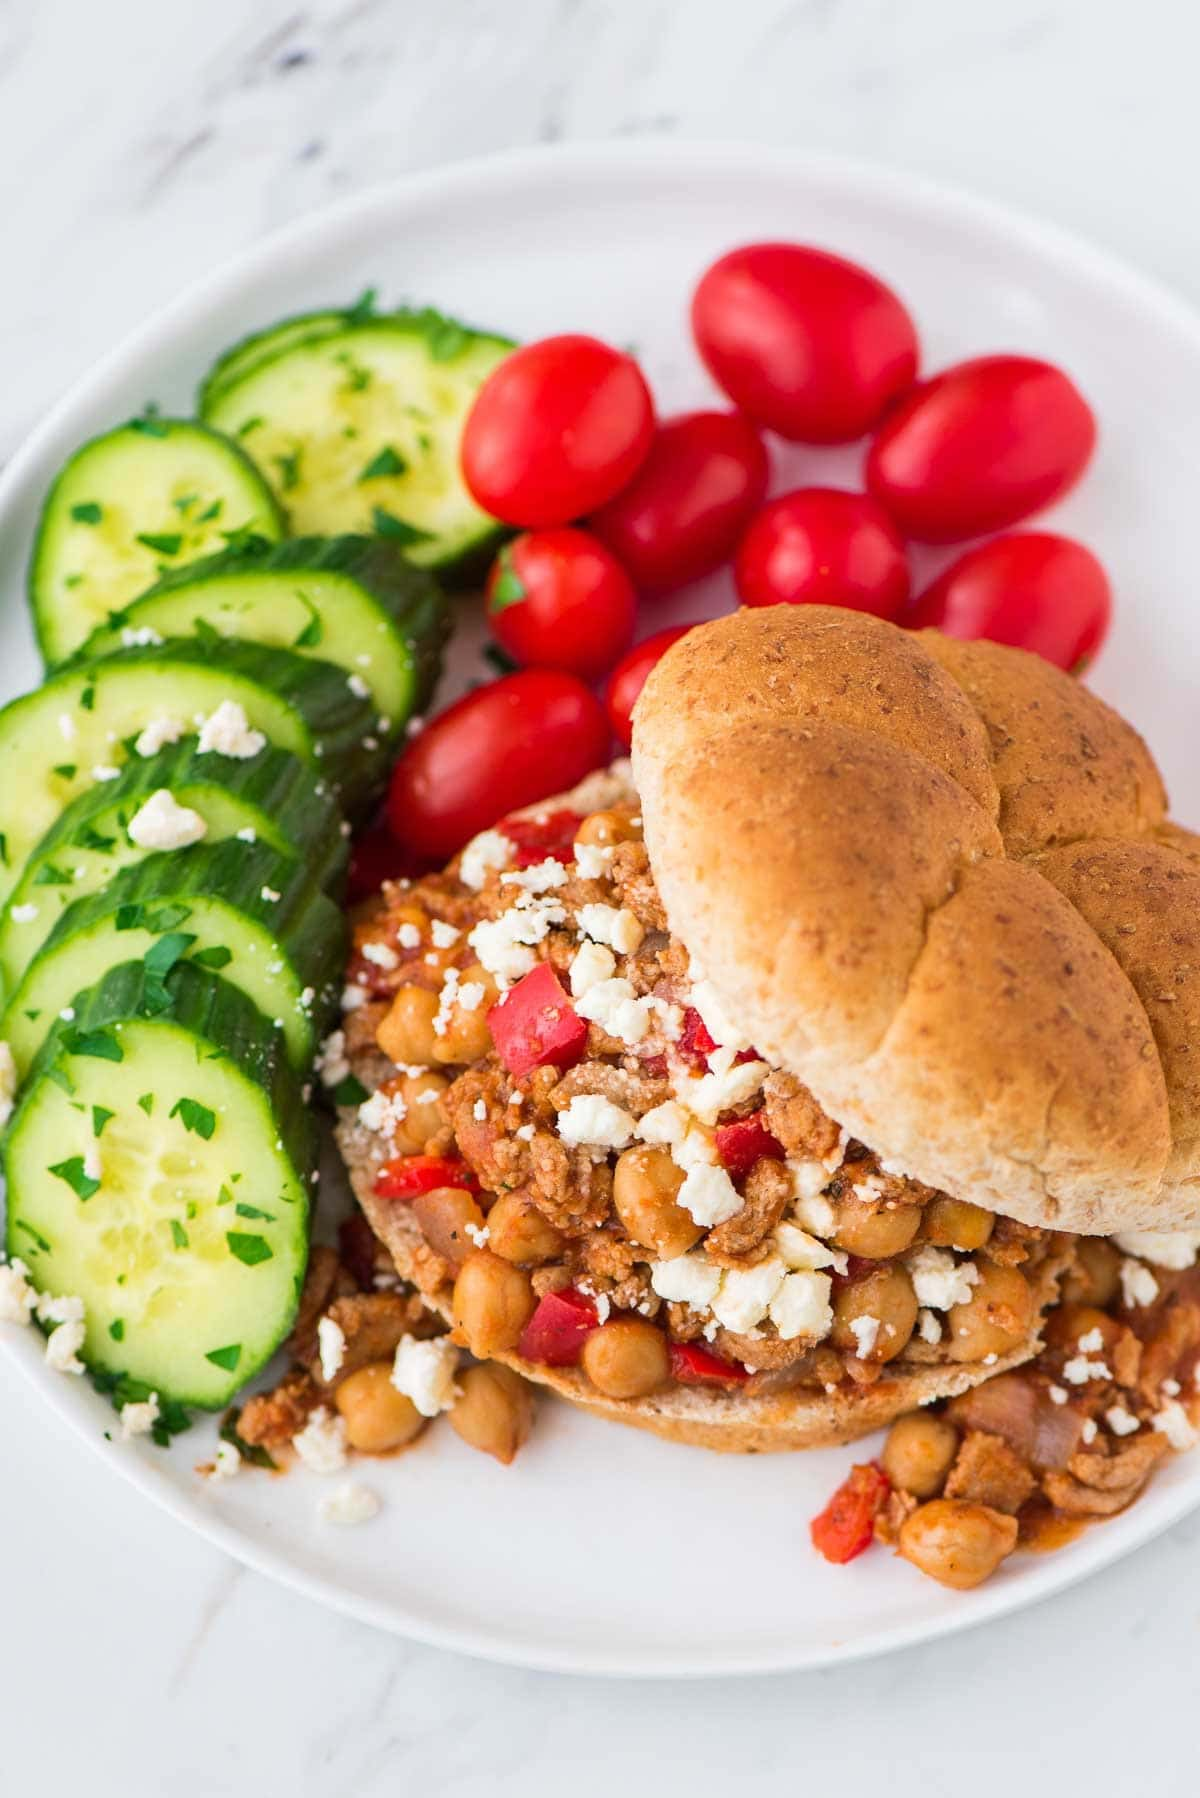 Homemade Greek Crock Pot Sloppy Joes made with turkey, chickpeas, and feta. Easy, healthy, and delicious! Recipe at wellplated.com | @wellplated